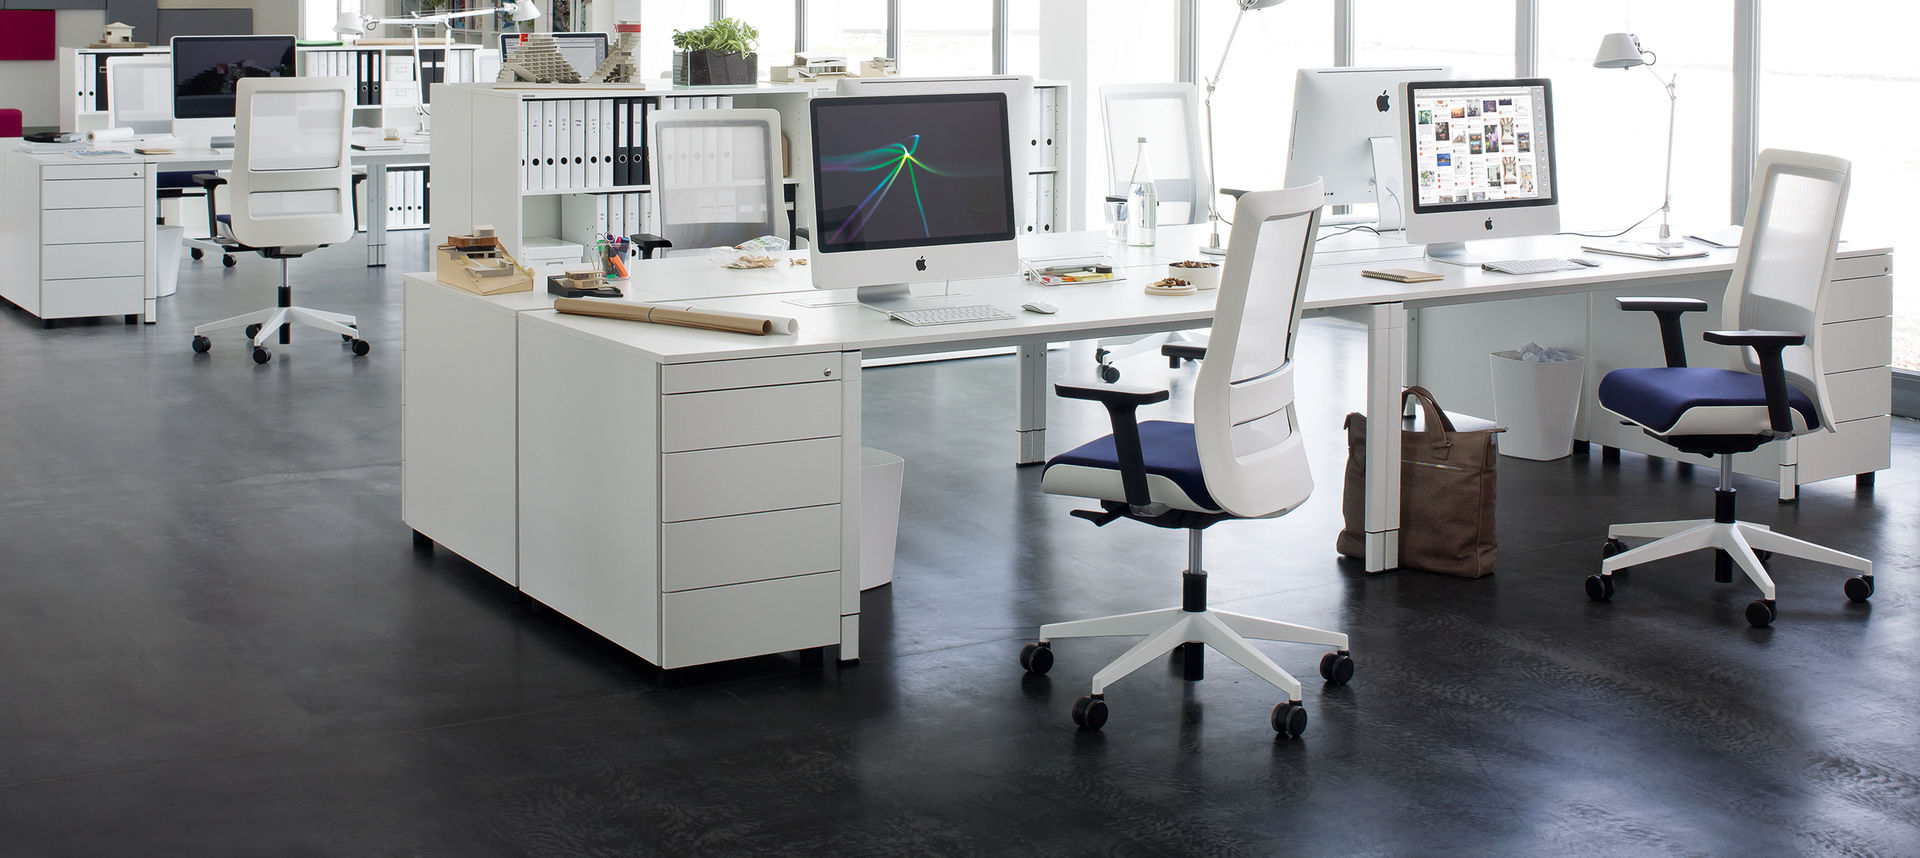 Ergonomic Workbench